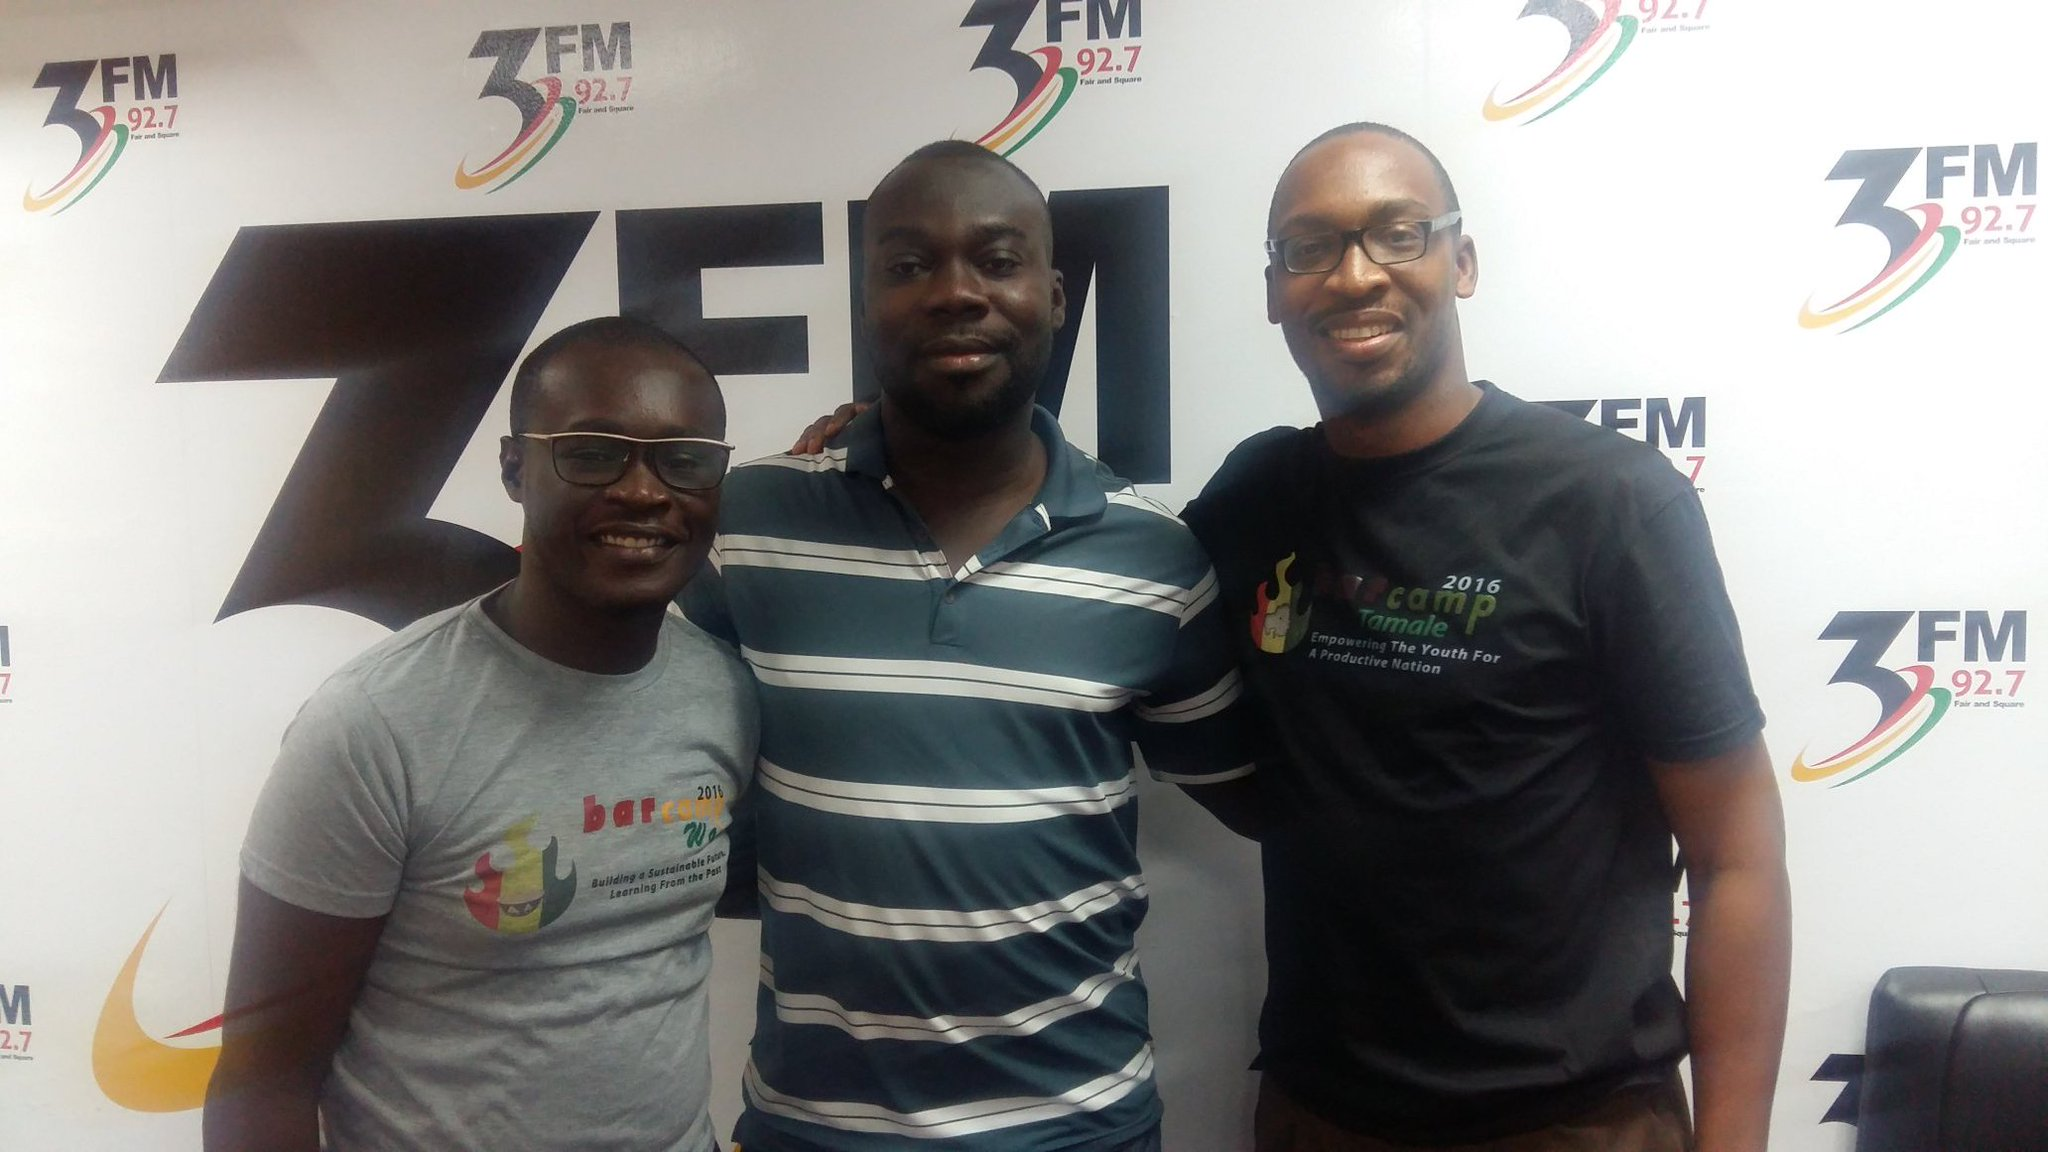 Great interview conducted by @winston_3fm on Sunrise @3fm927 in #Accra talking about National Volunteer Day #NVDay16 https://t.co/agHlPzGkvx